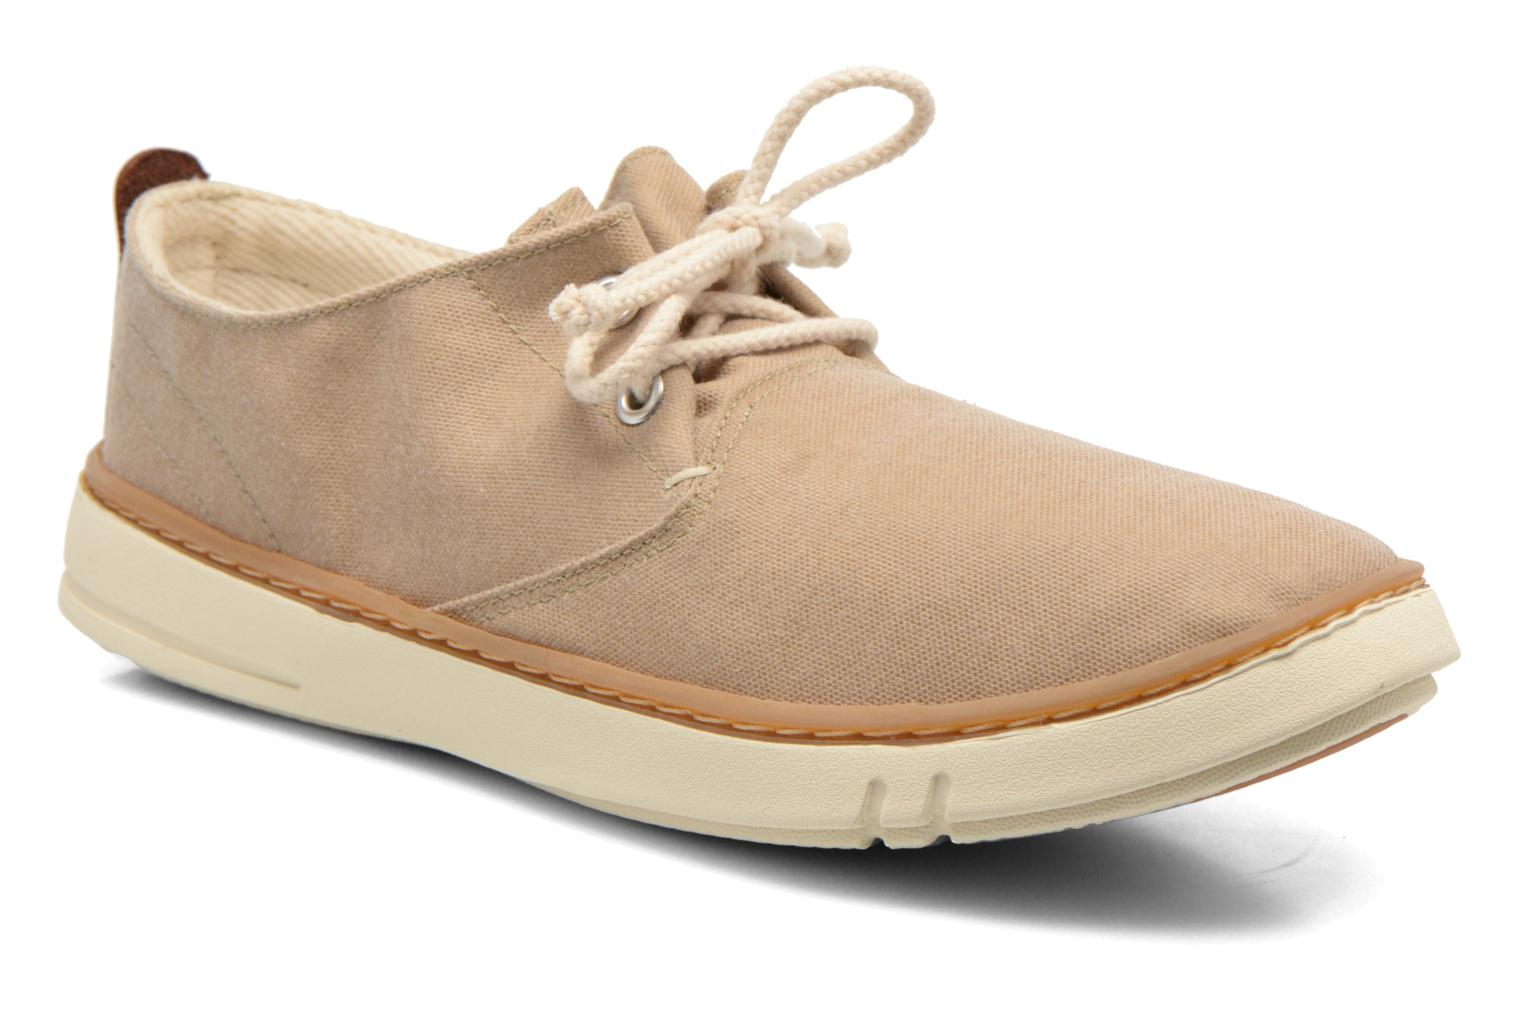 Earthkeepers Hookset Handcrafted Fabric Oxford Travertine Waxed Canvas